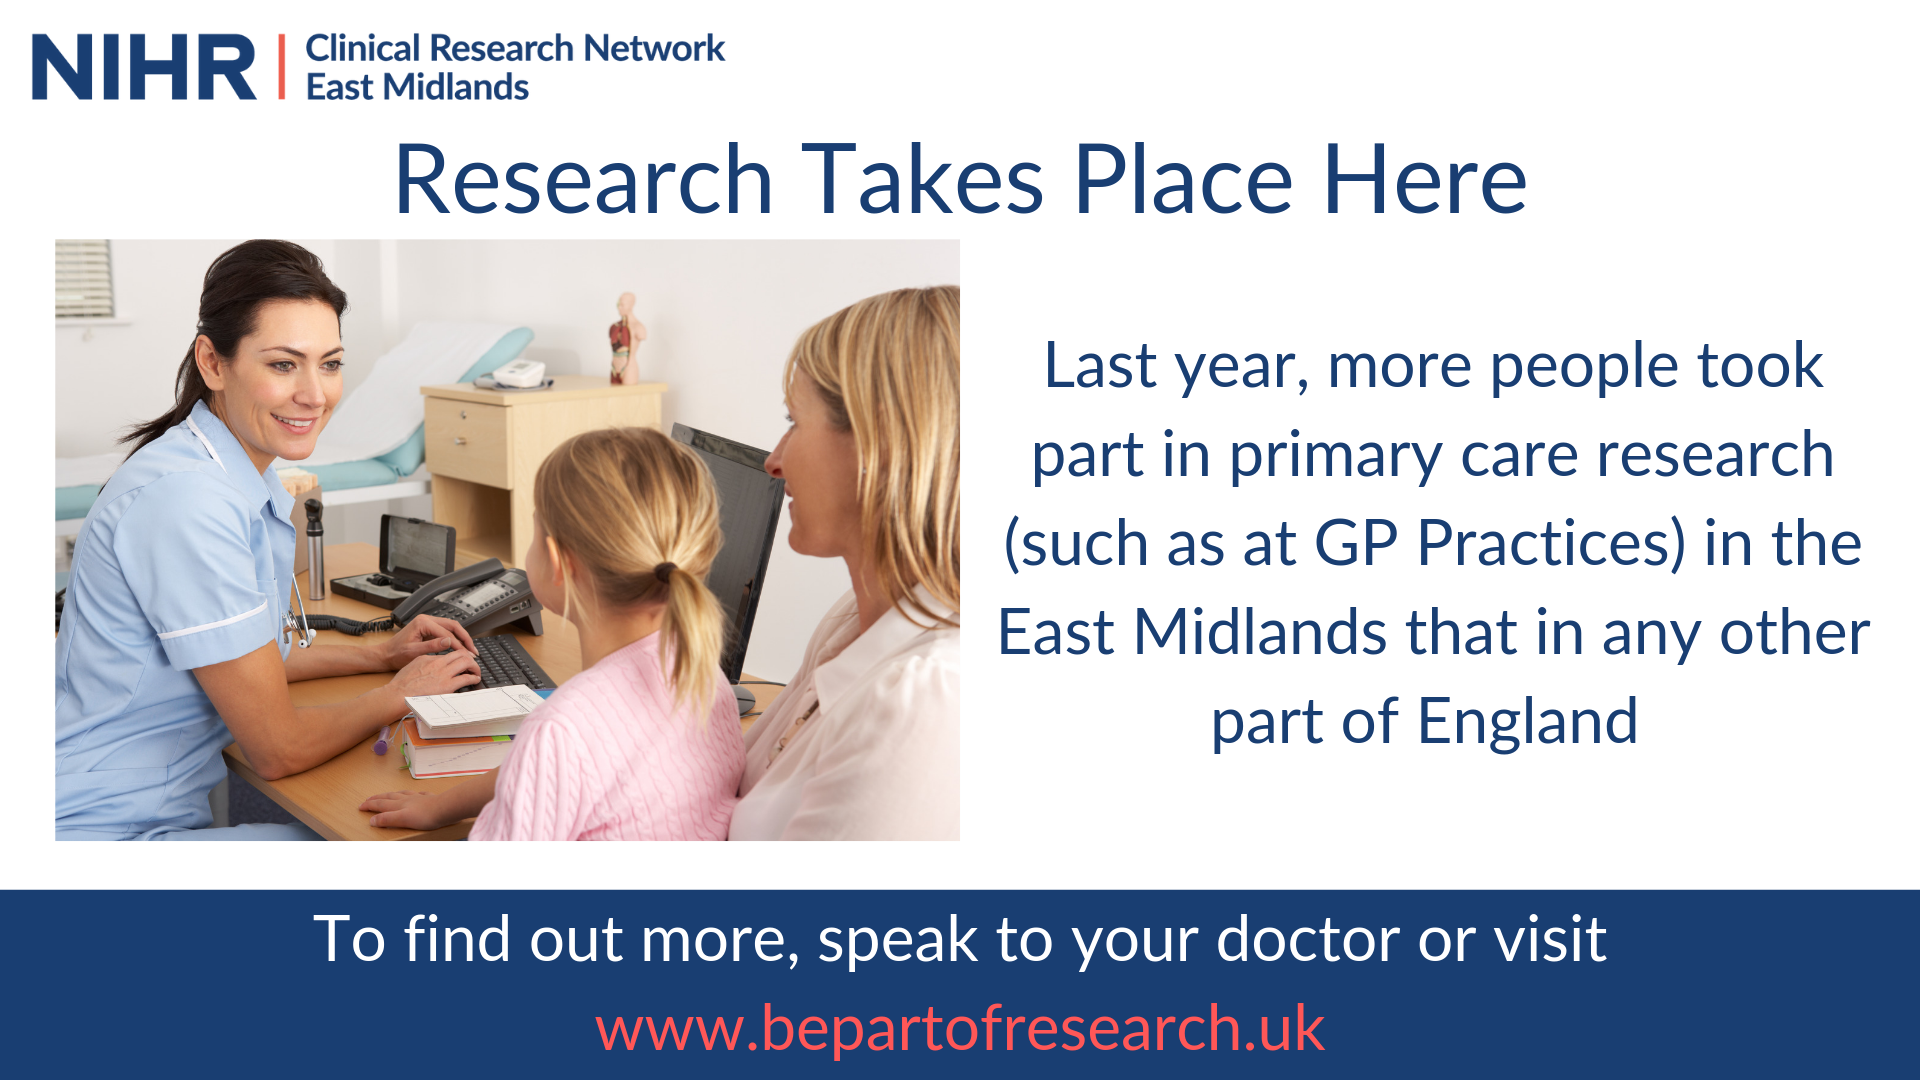 NIHR Clinical Research Network East Midlands.  Research takes place here